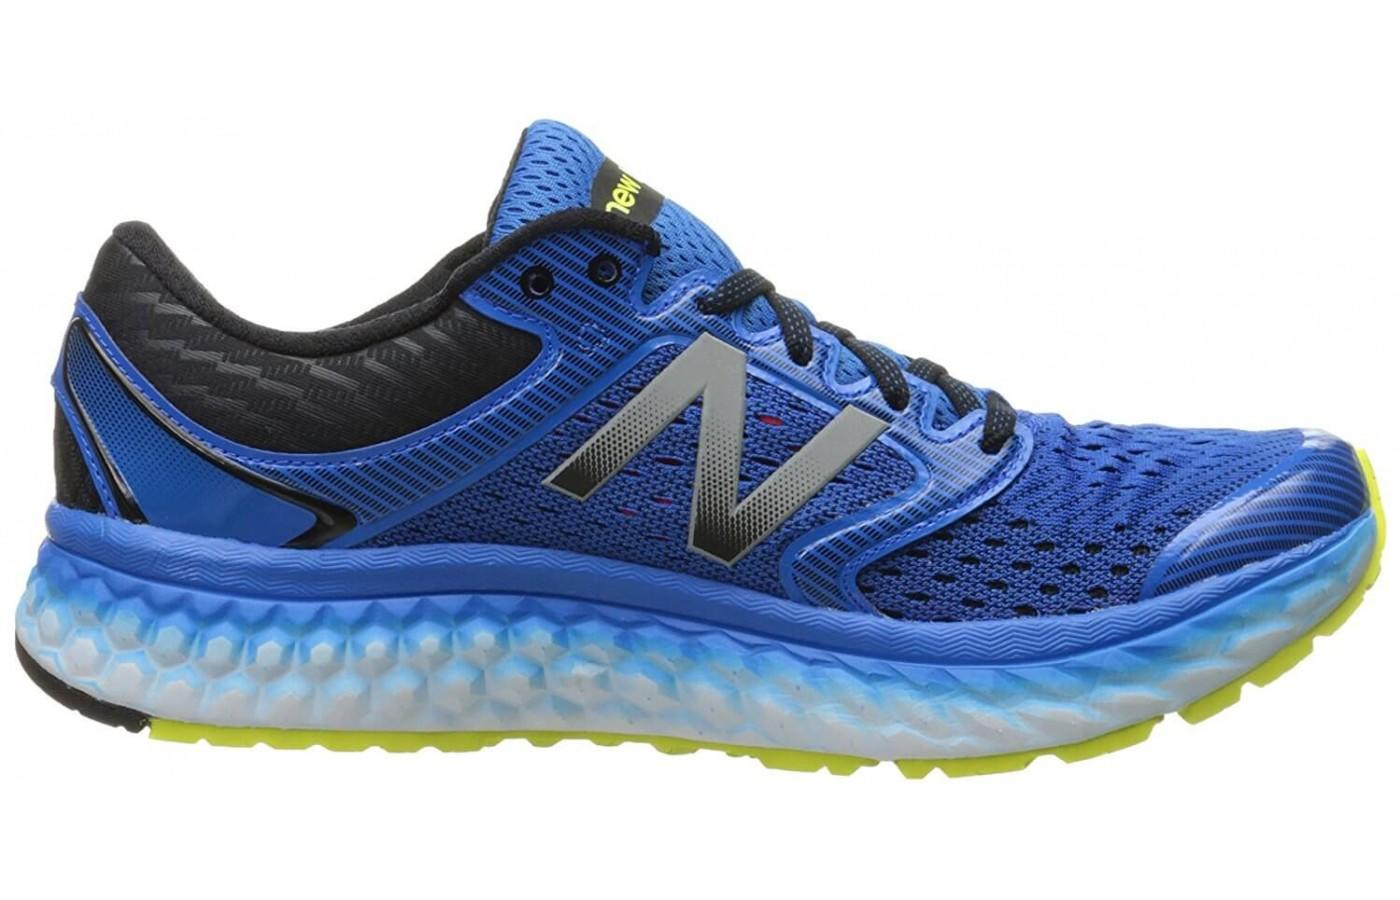 Interior side view of the New Balance Fresh Foam 1080 v7